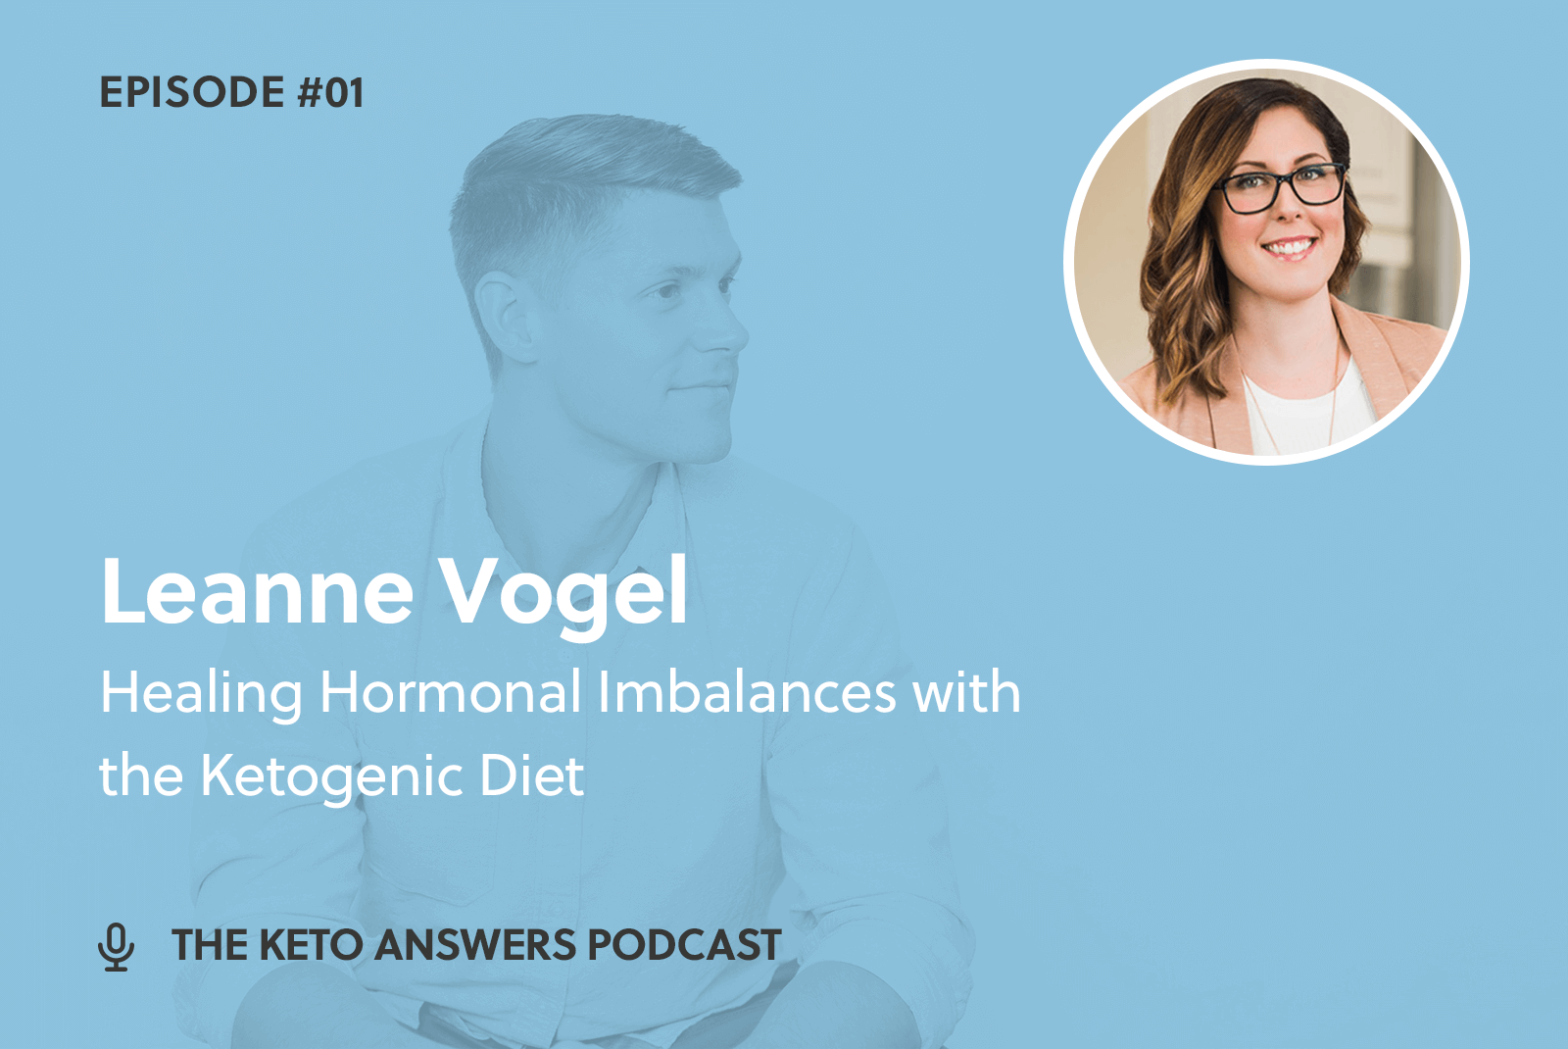 001: Healing Hormonal Imbalances with the Ketogenic Diet – Leanne Vogel